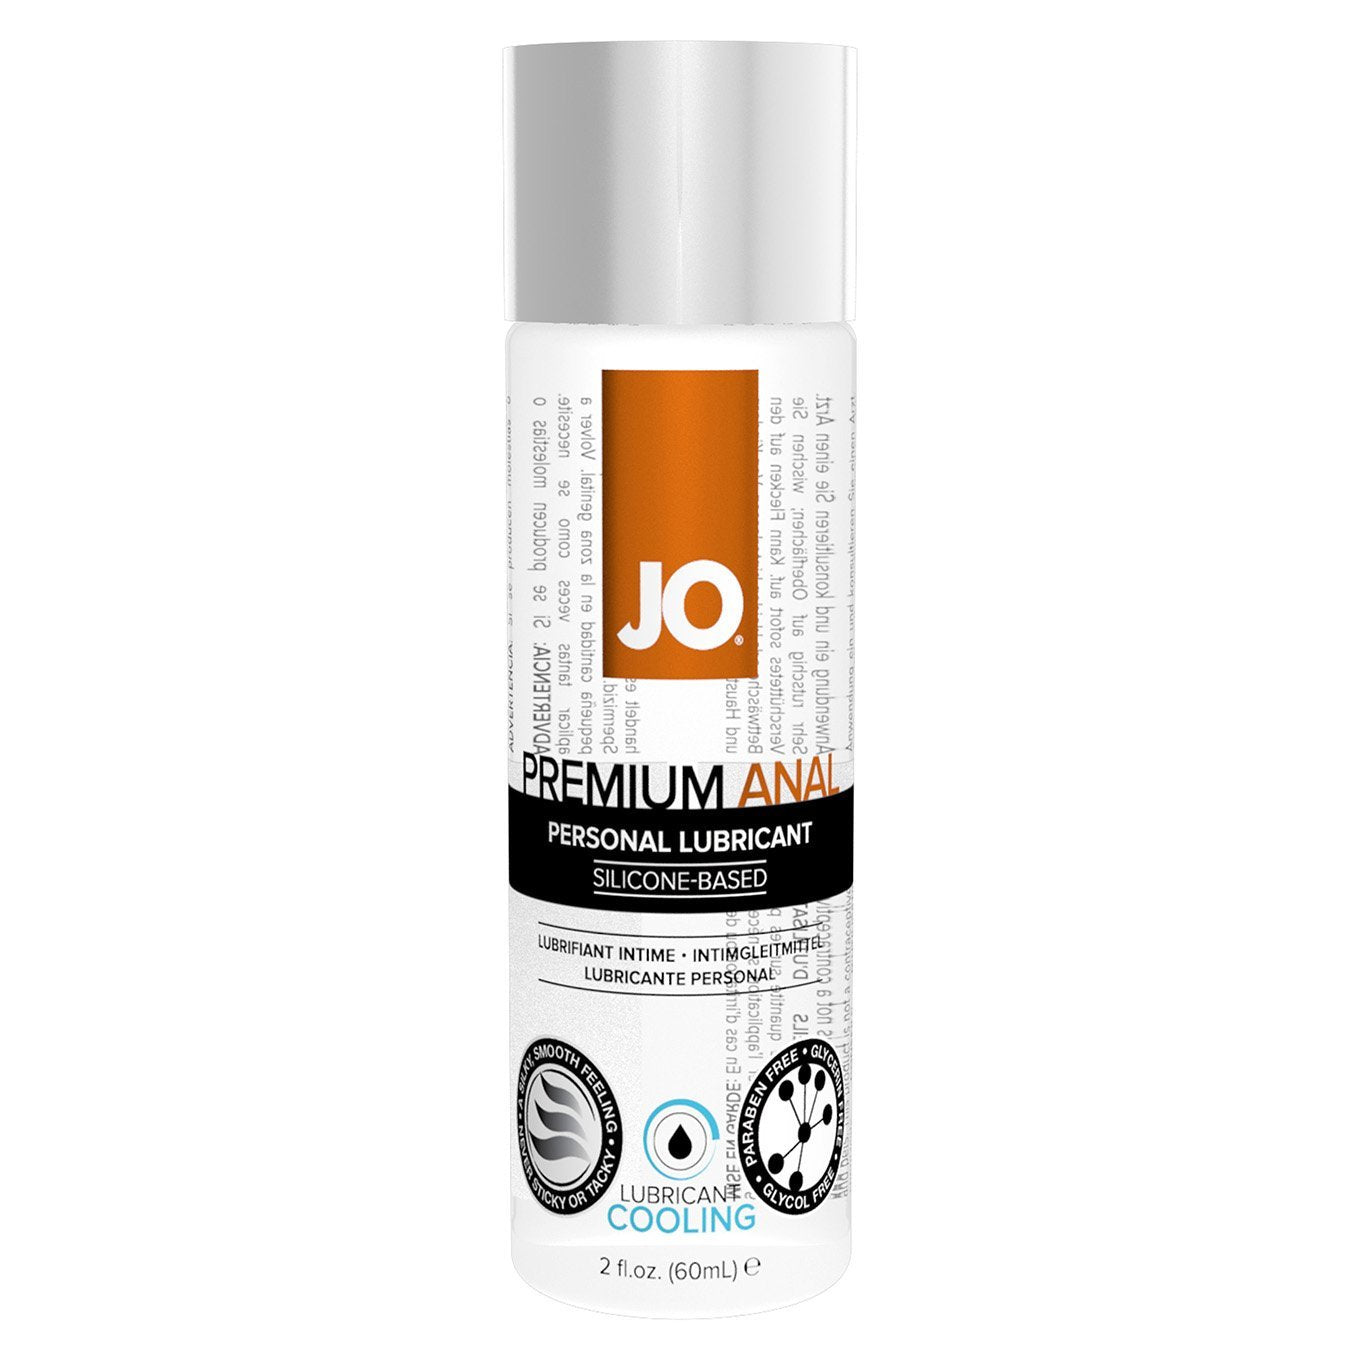 System JO - Premium Anal Silicone Lubricant 60 ml (Cooling) Lube (Silicone Based) Singapore